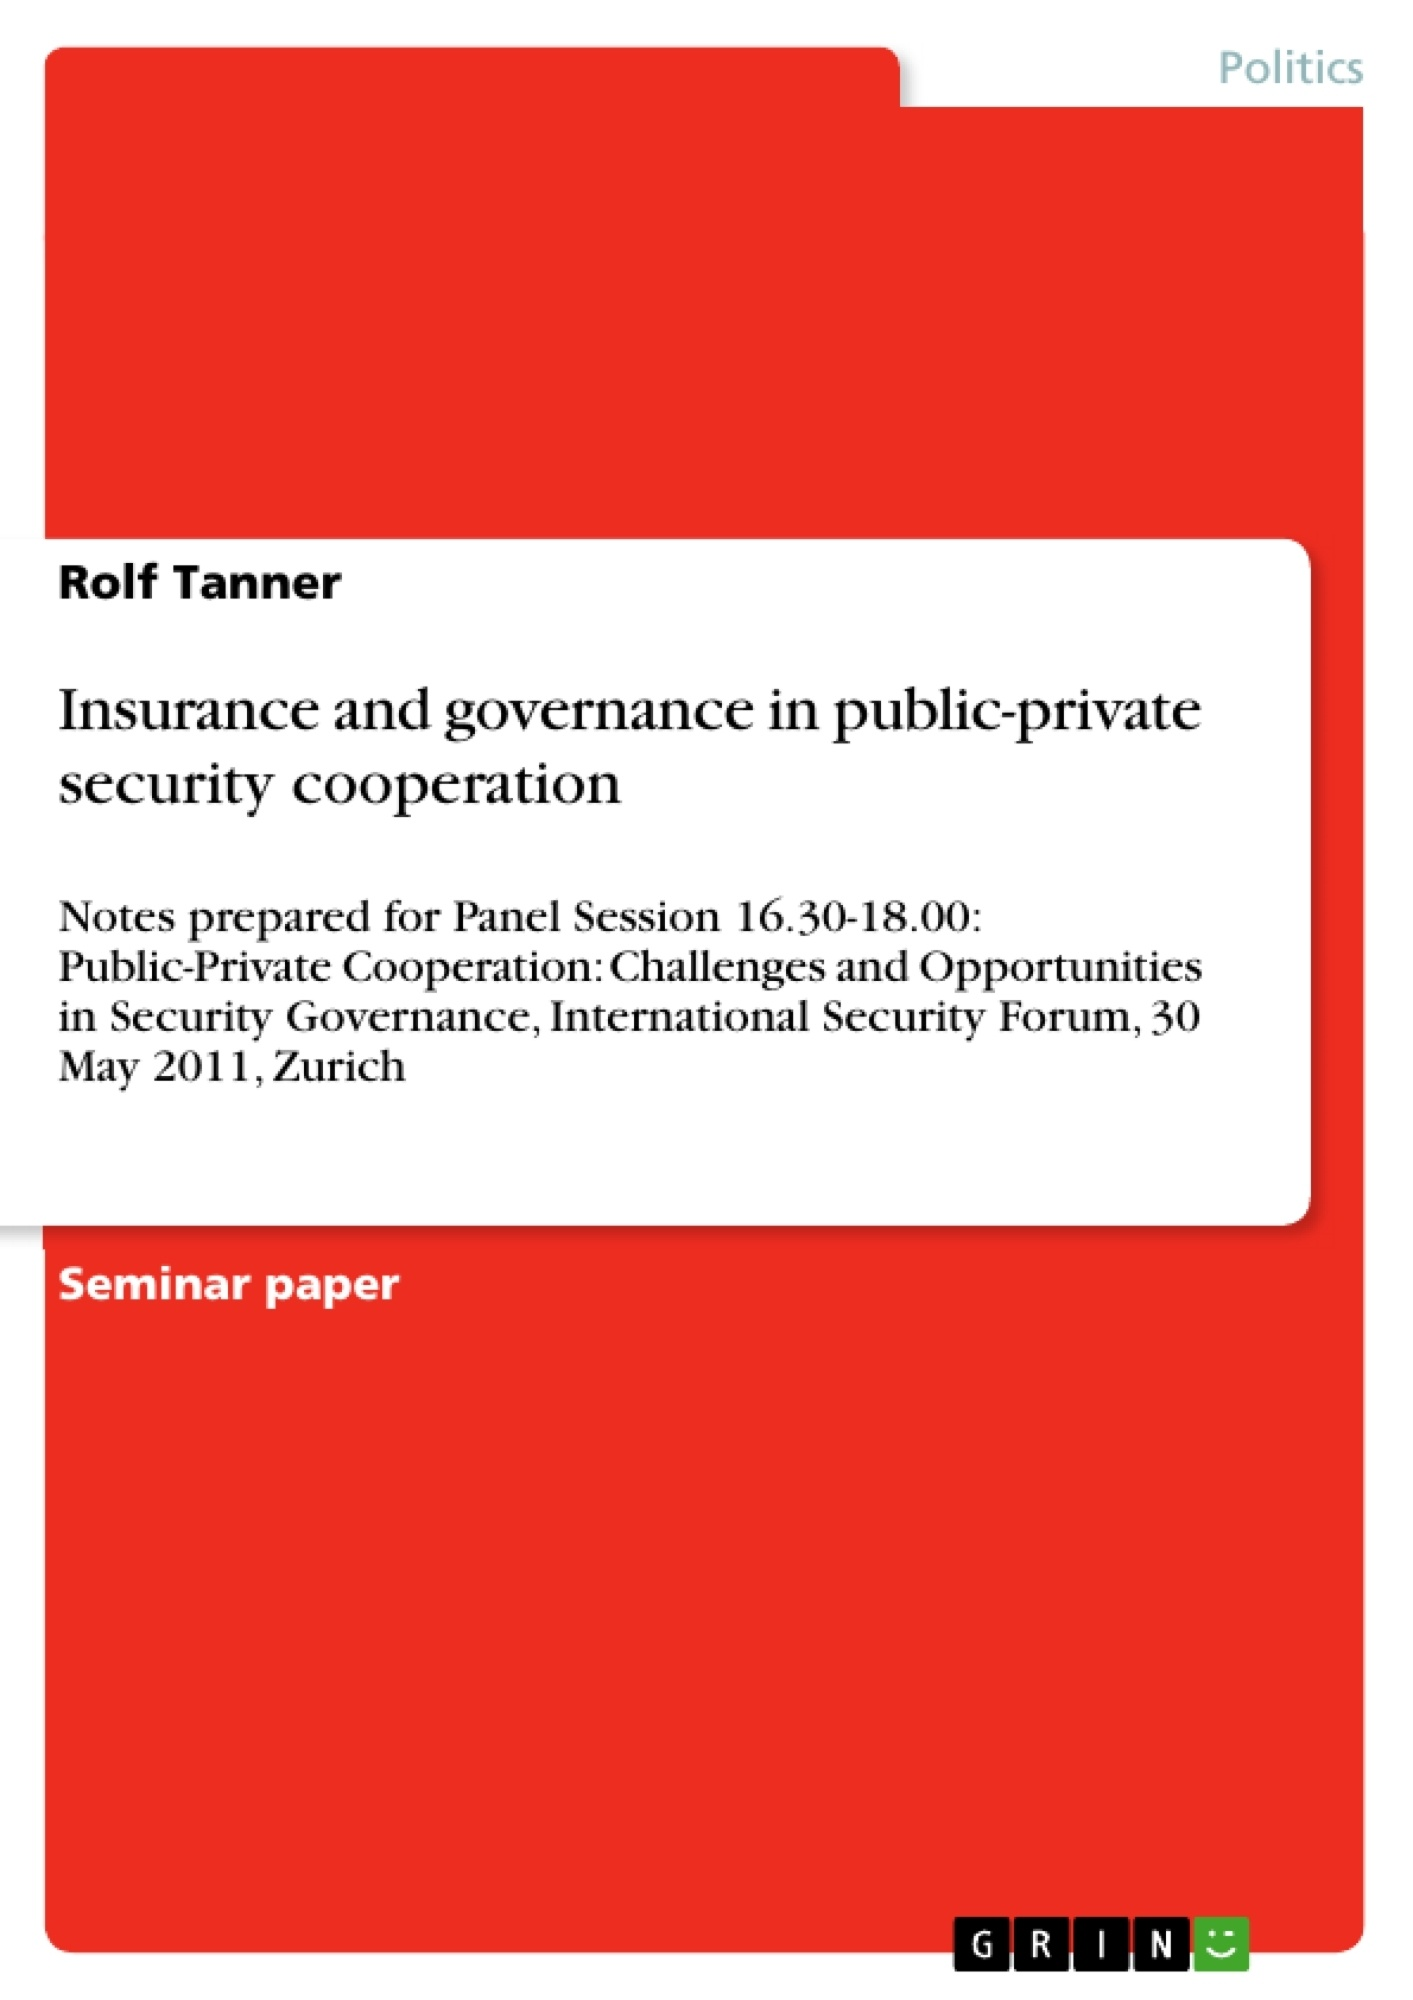 Title: Insurance and governance in public-private security cooperation